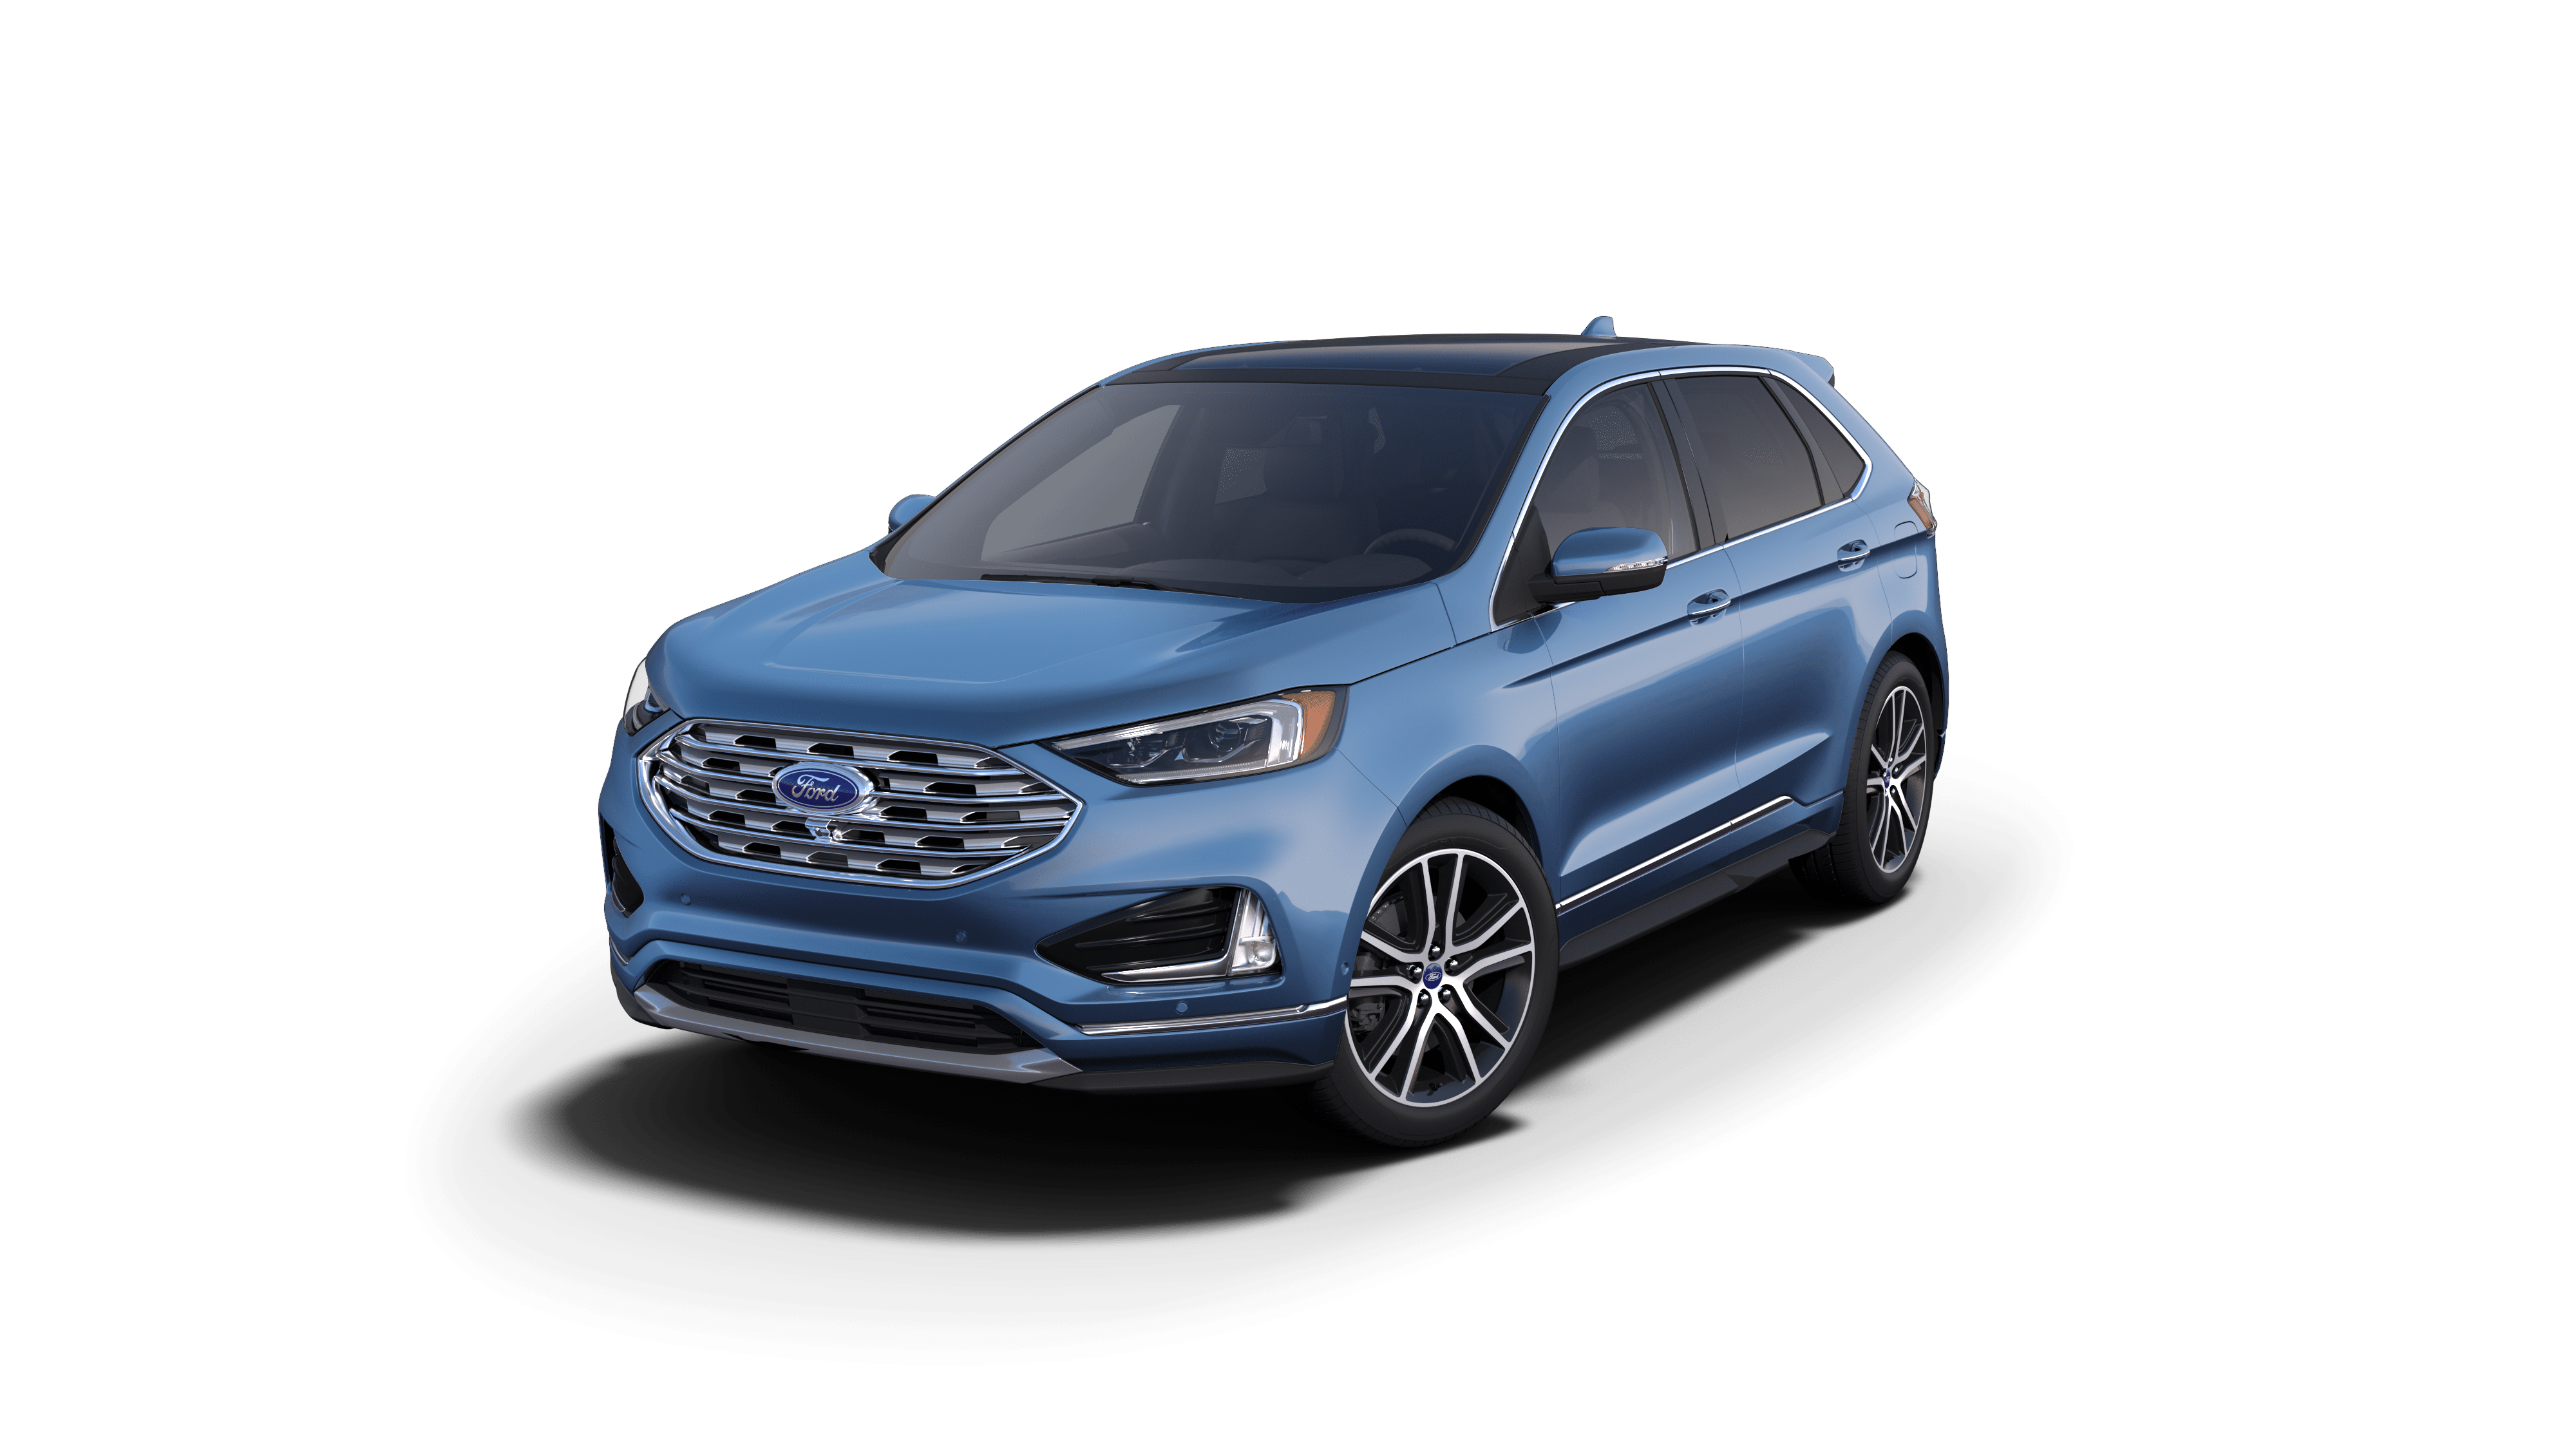 2019 Ford Edge Vehicle Photo in Souderton, PA 18964-1038